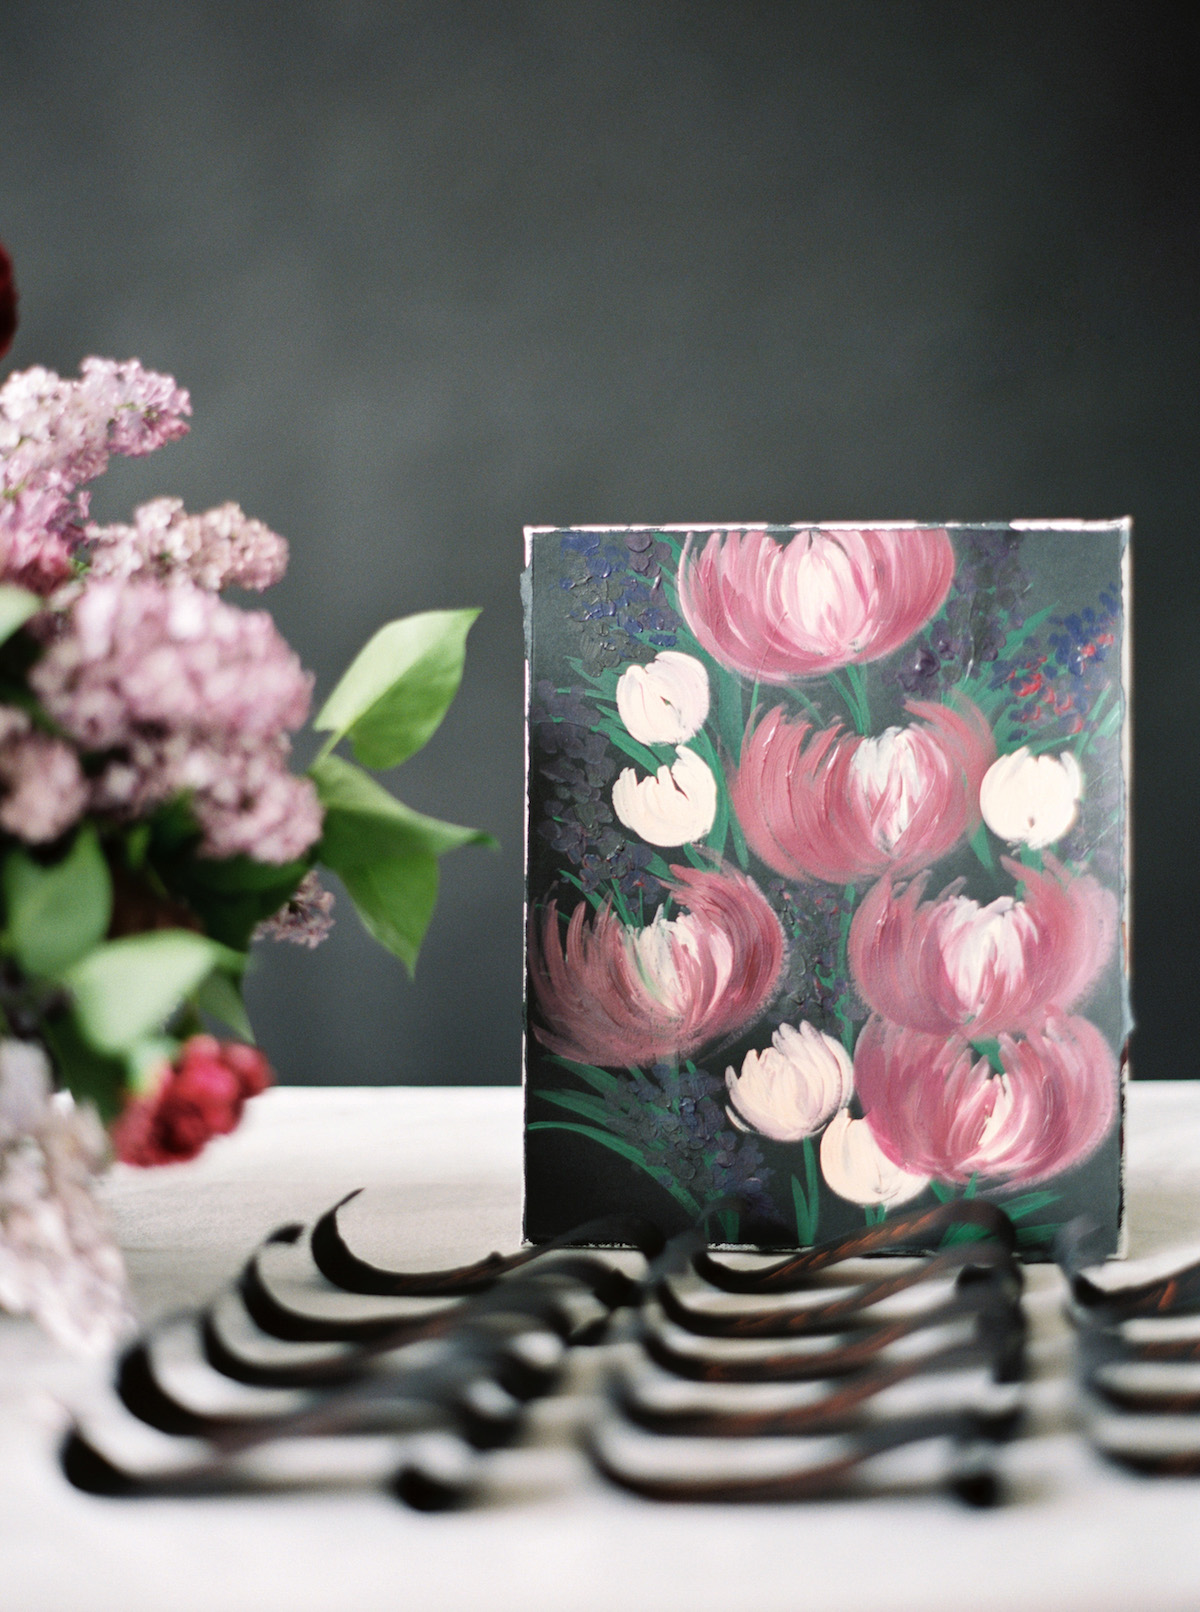 Latest Wedding invitation trends for 2019 painting for escort card table